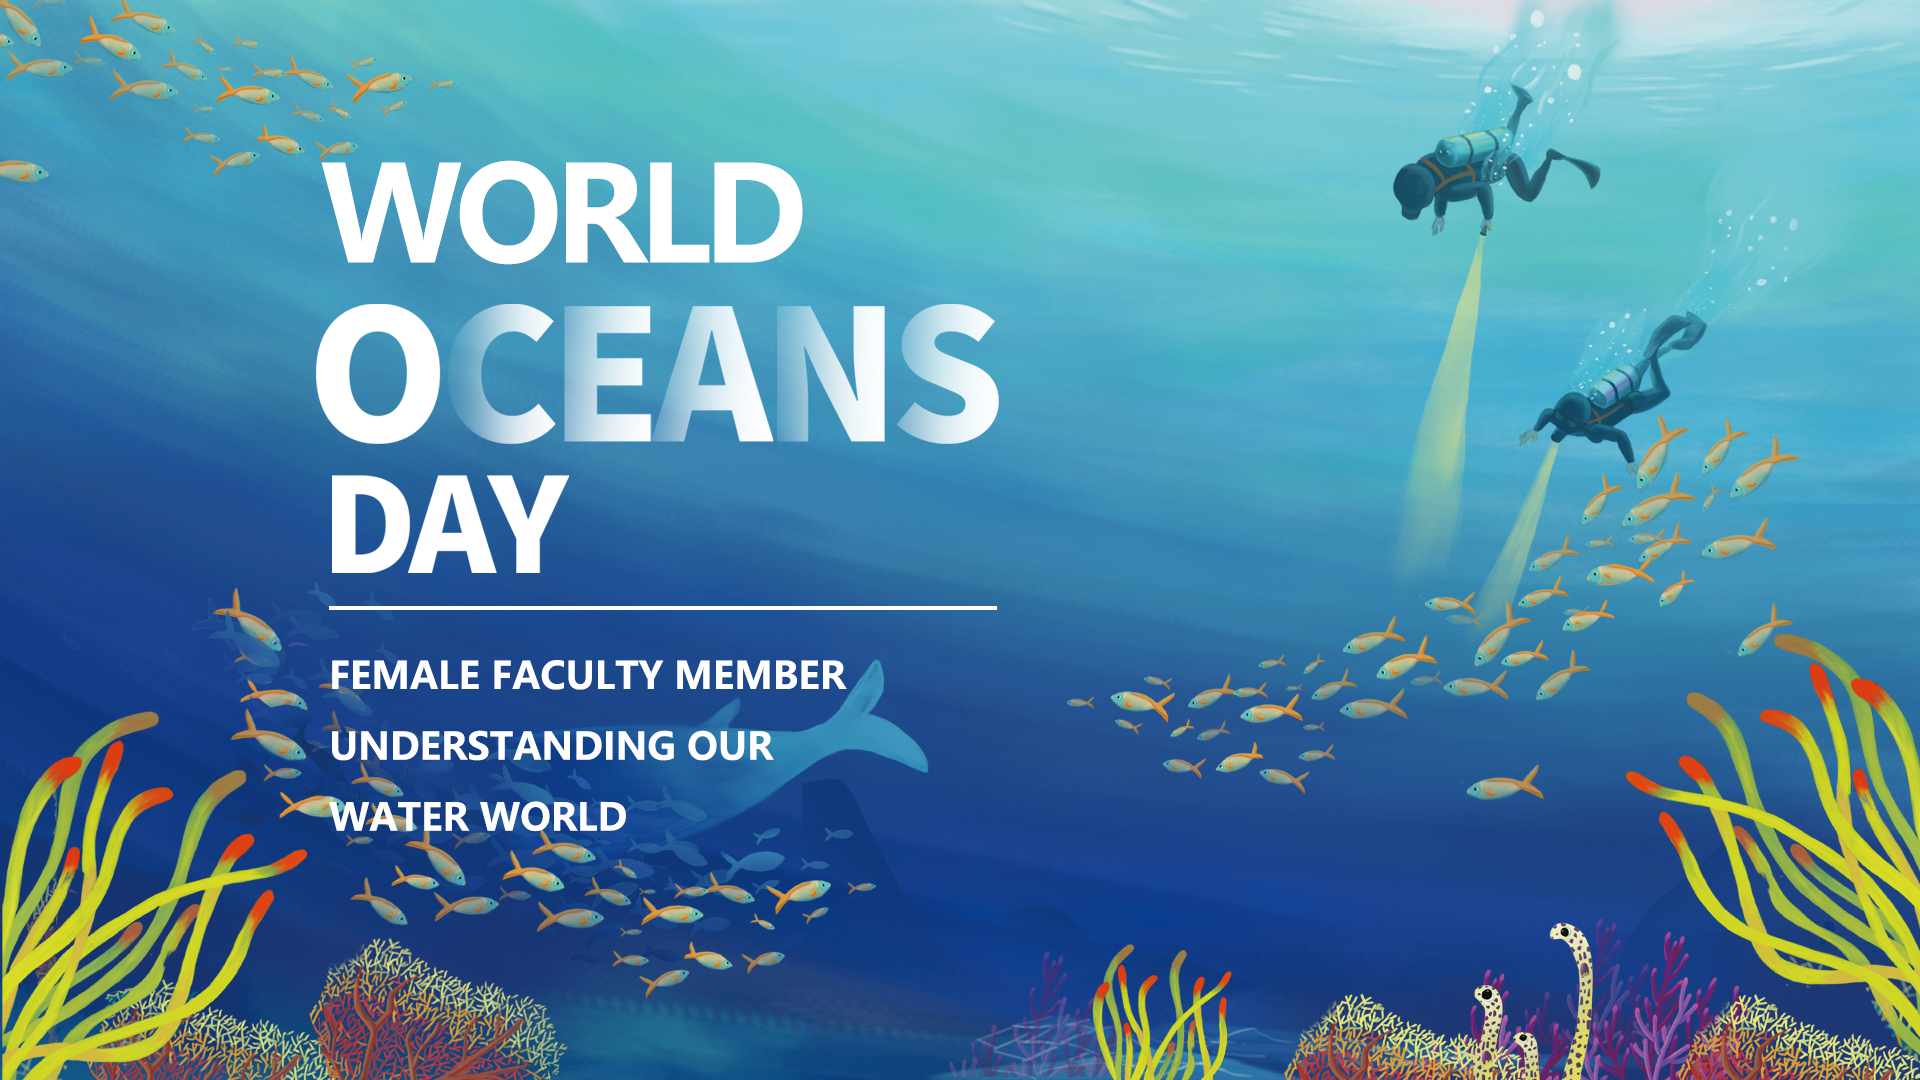 World Oceans Day: female faculty member understanding our water world